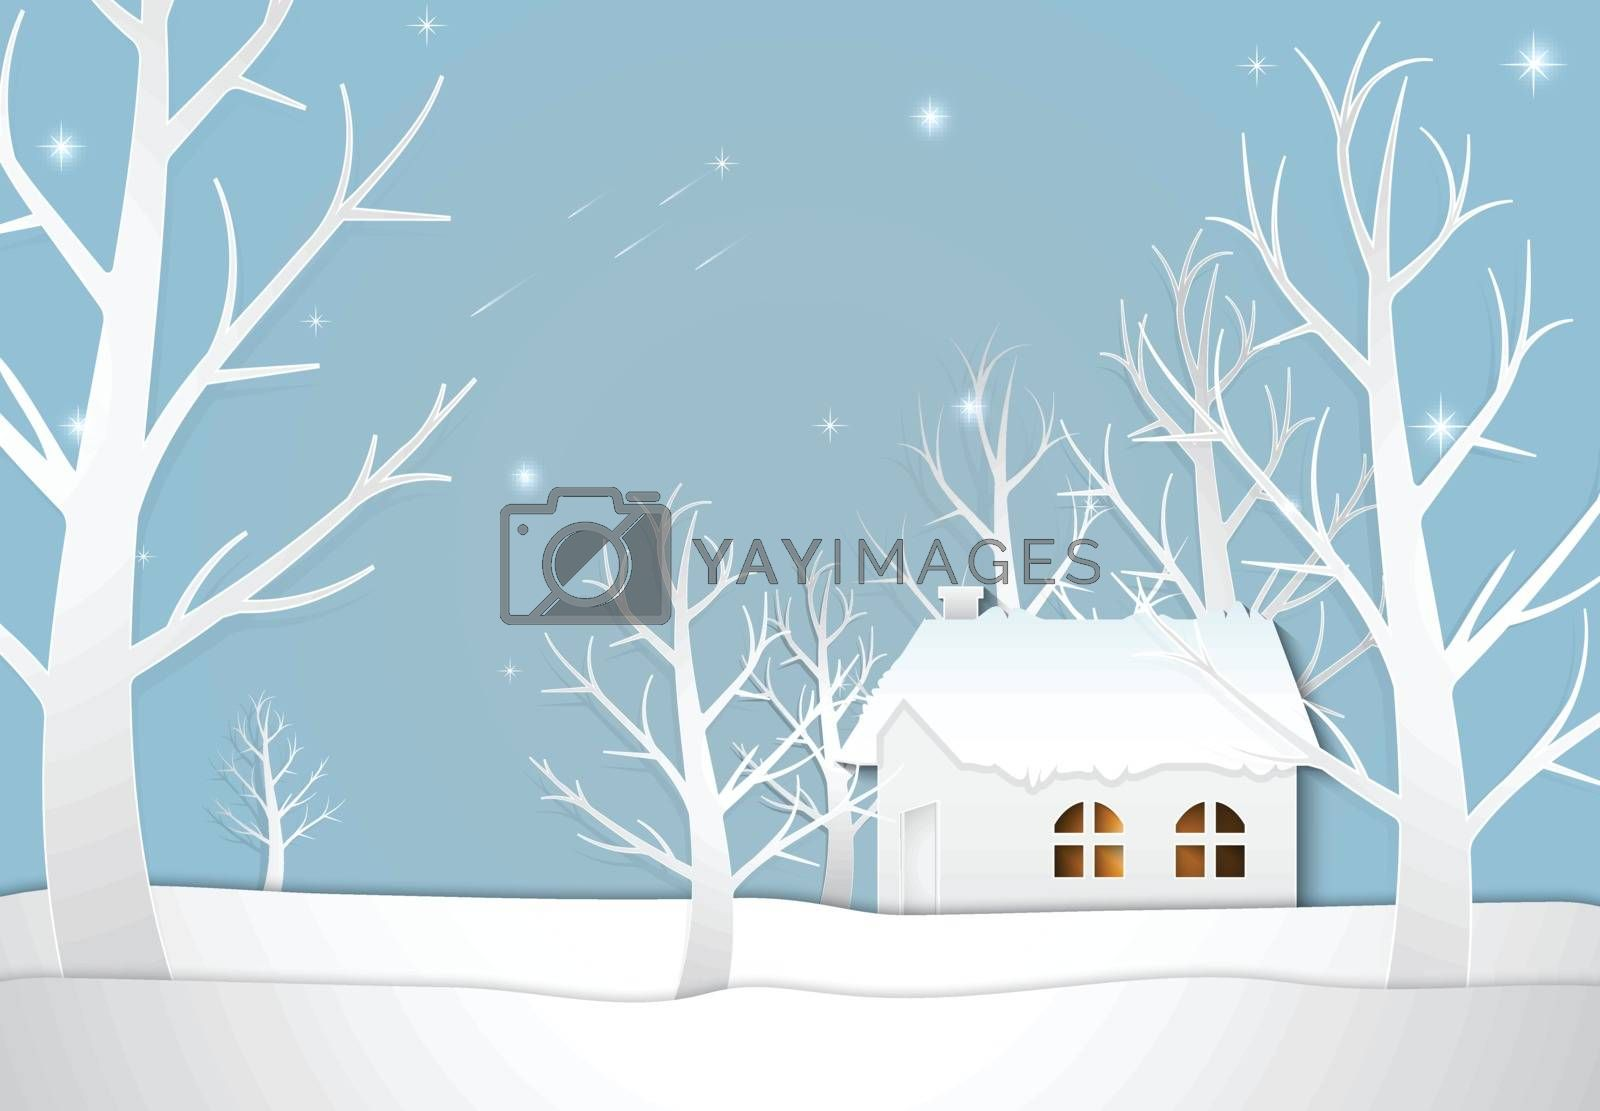 Cottage with star and comet on night sky, Christmas season background paper art style illustration.